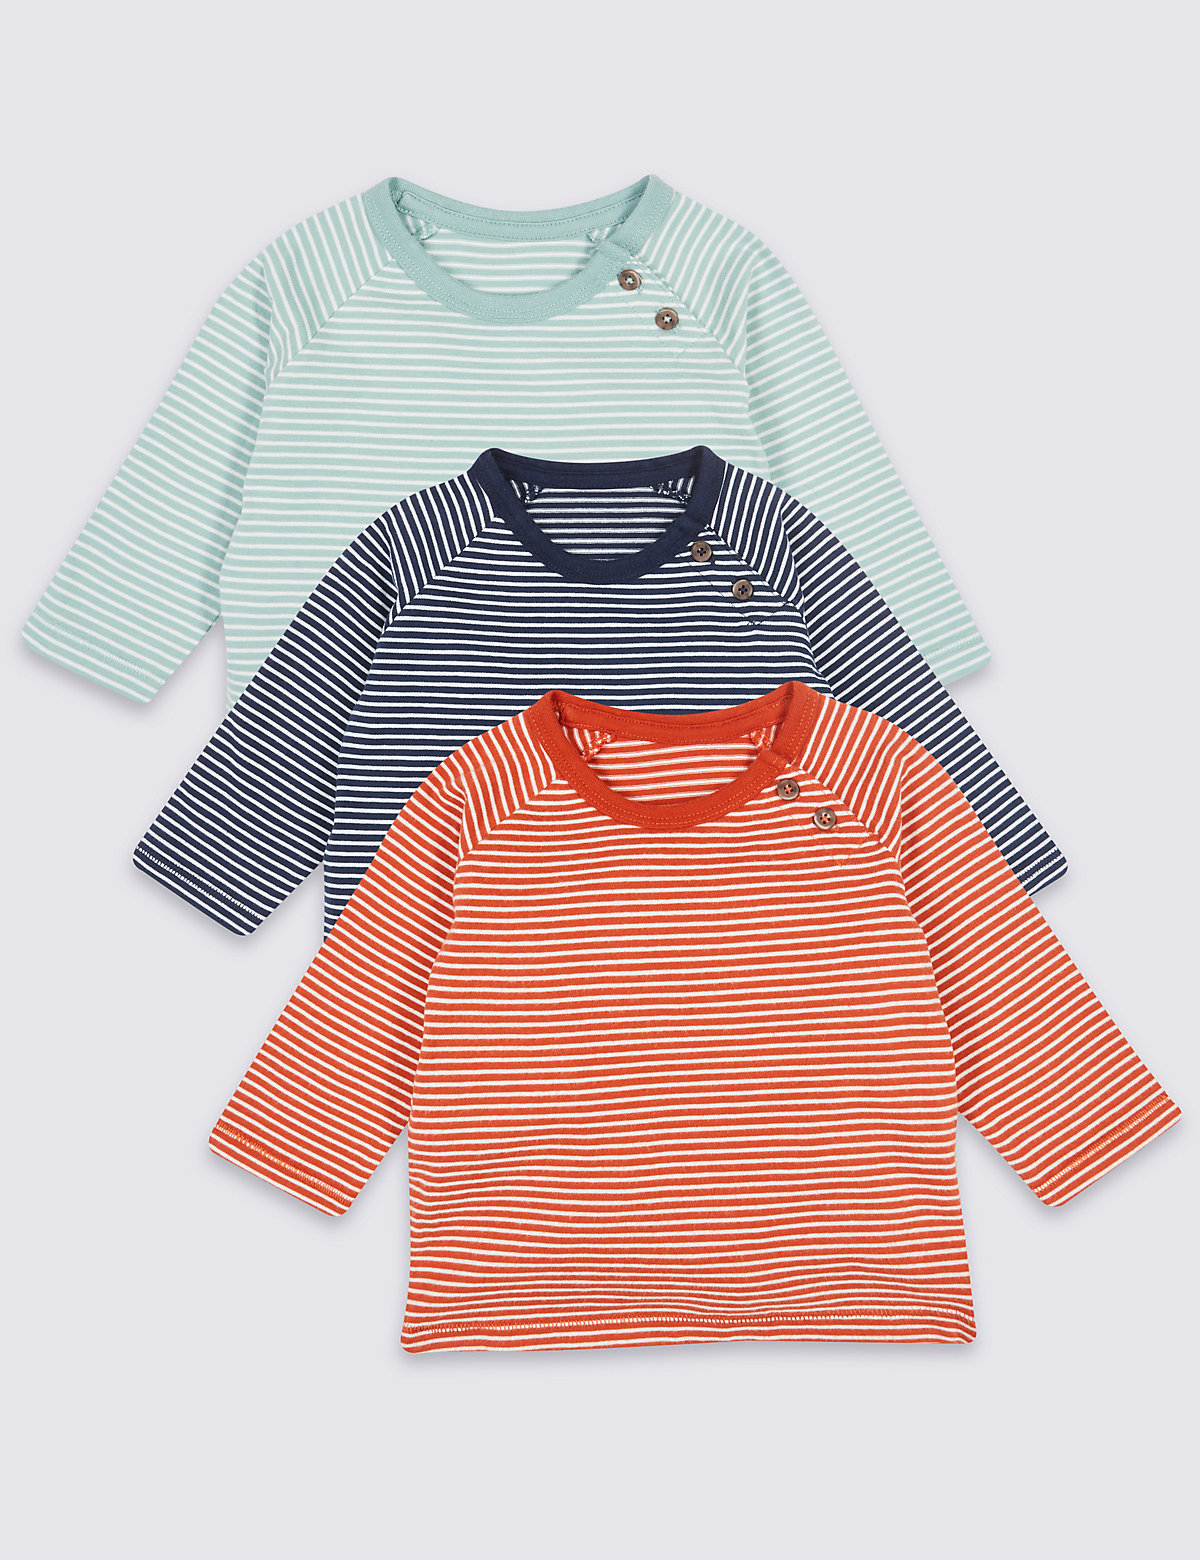 3 Pack Pure Cotton Striped T-Shirts